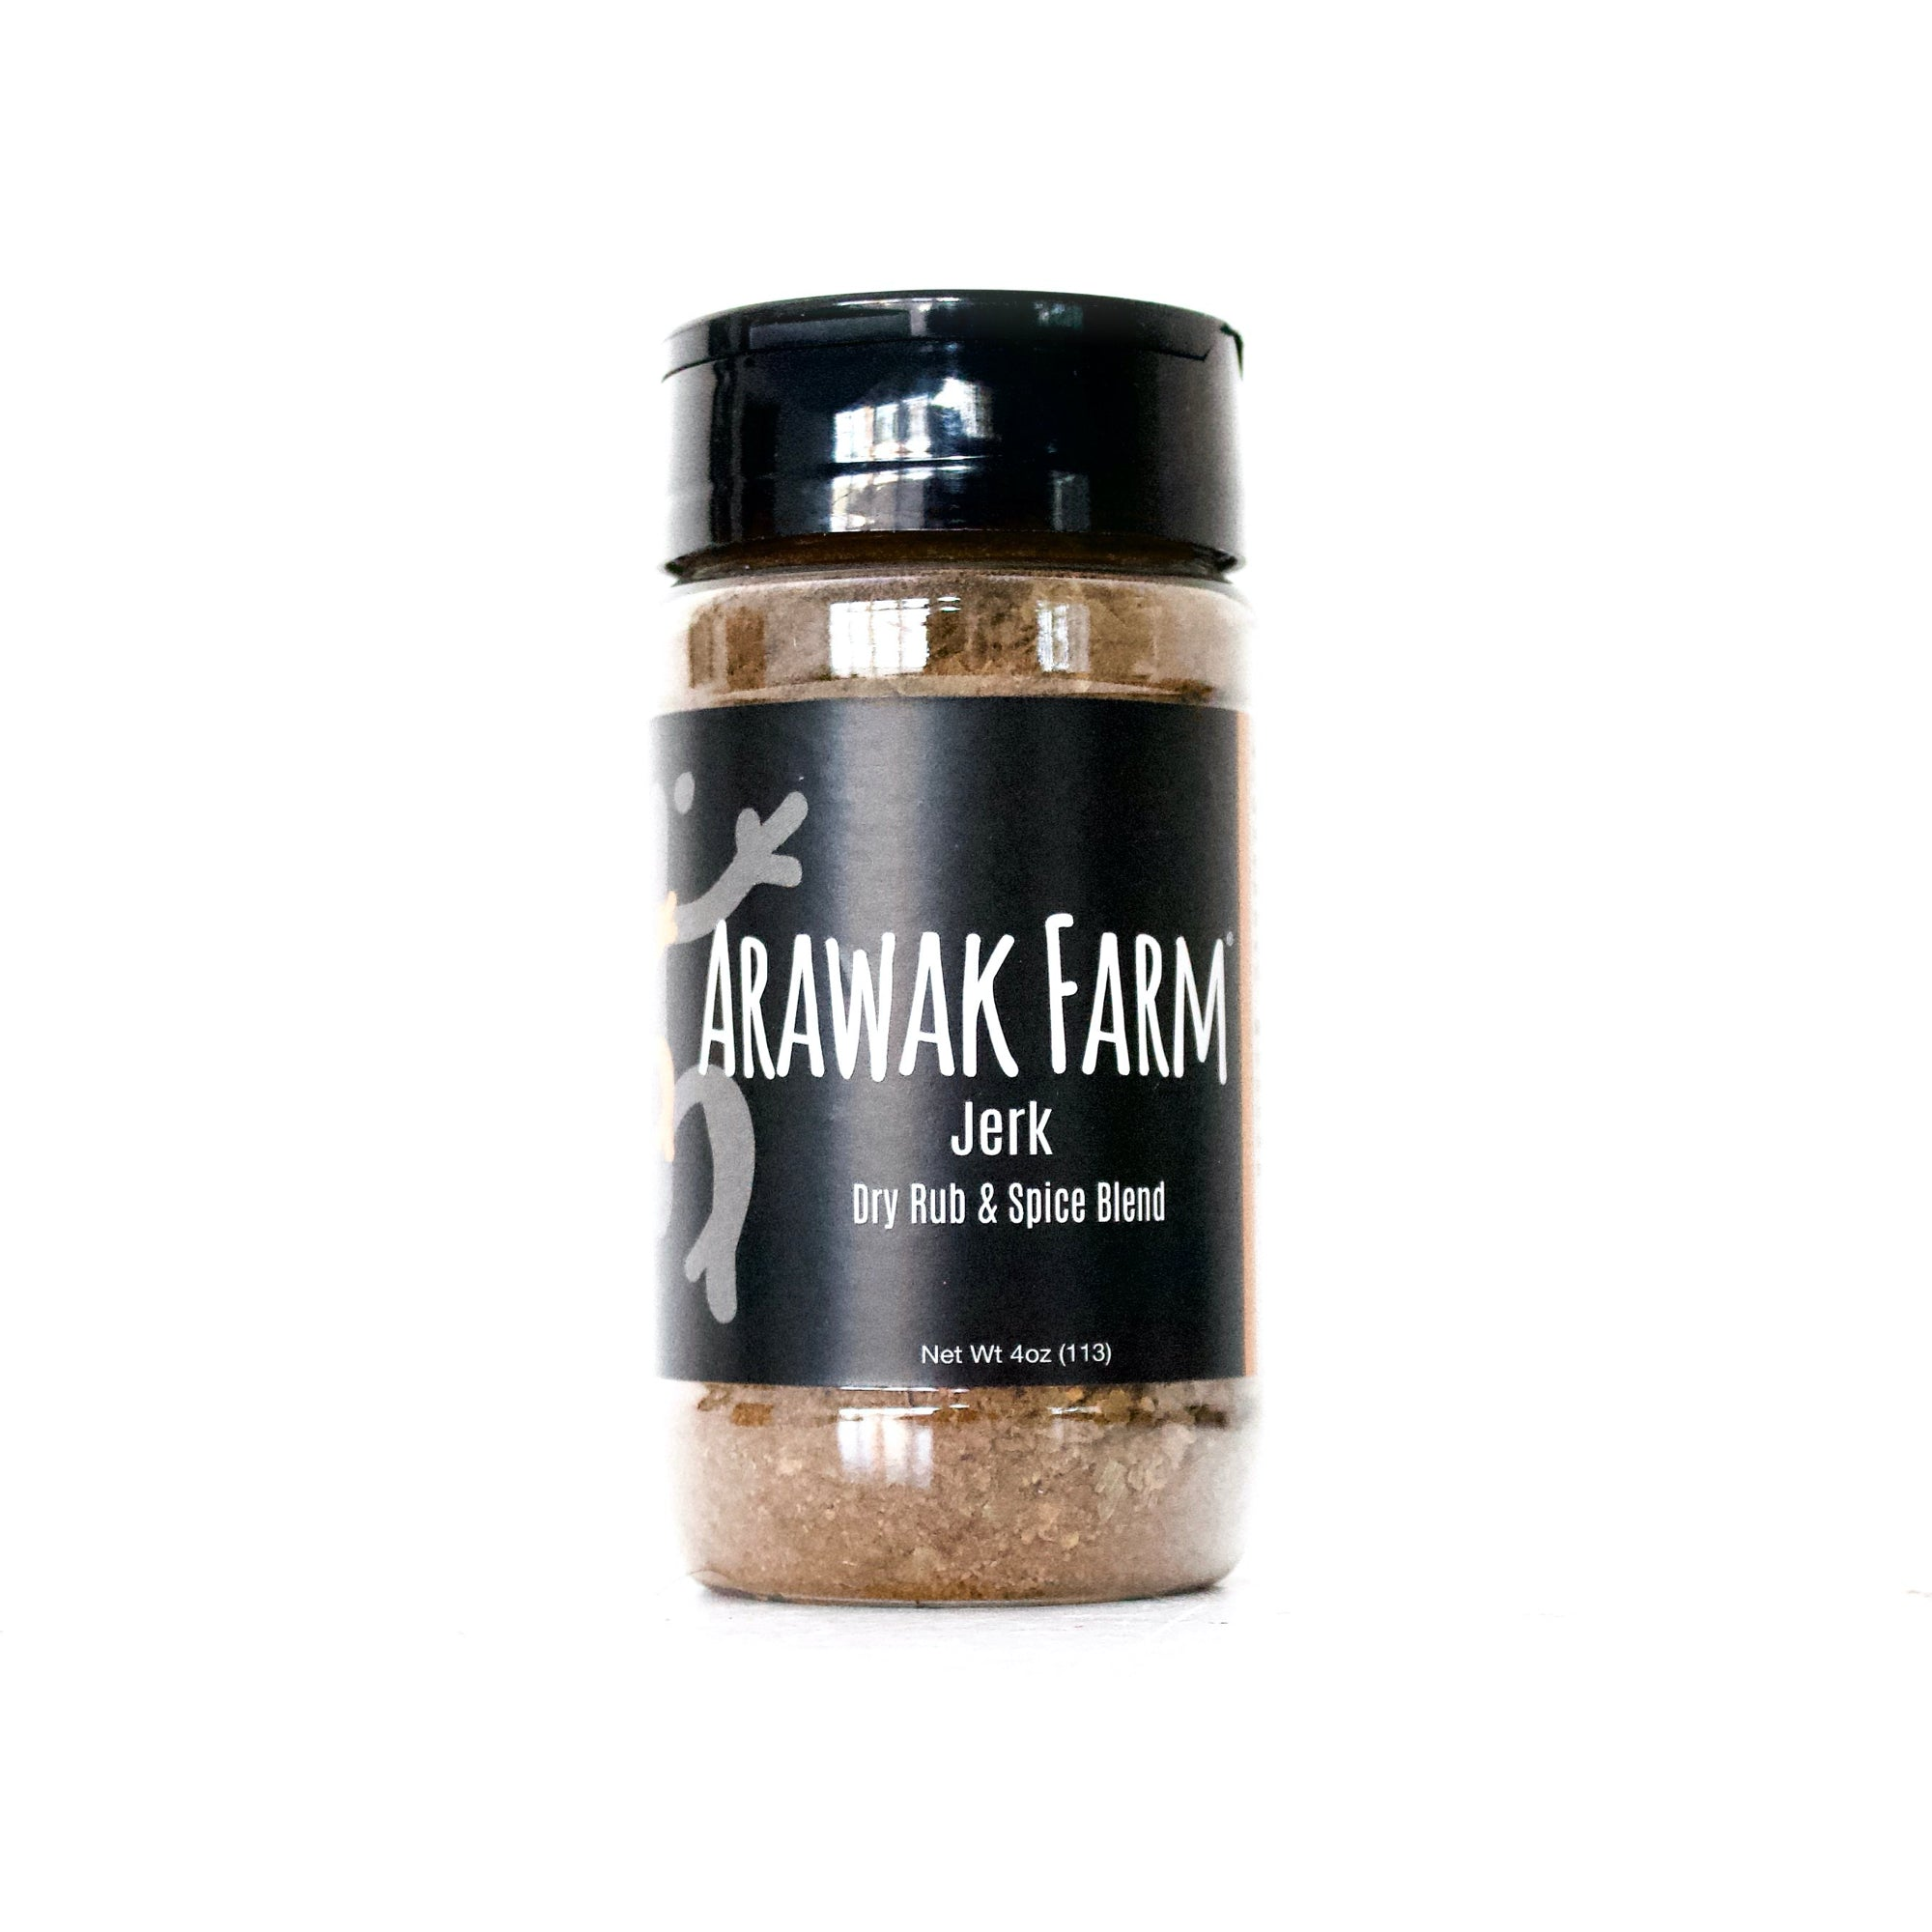 Arawak Farm Jerk Dry Rub